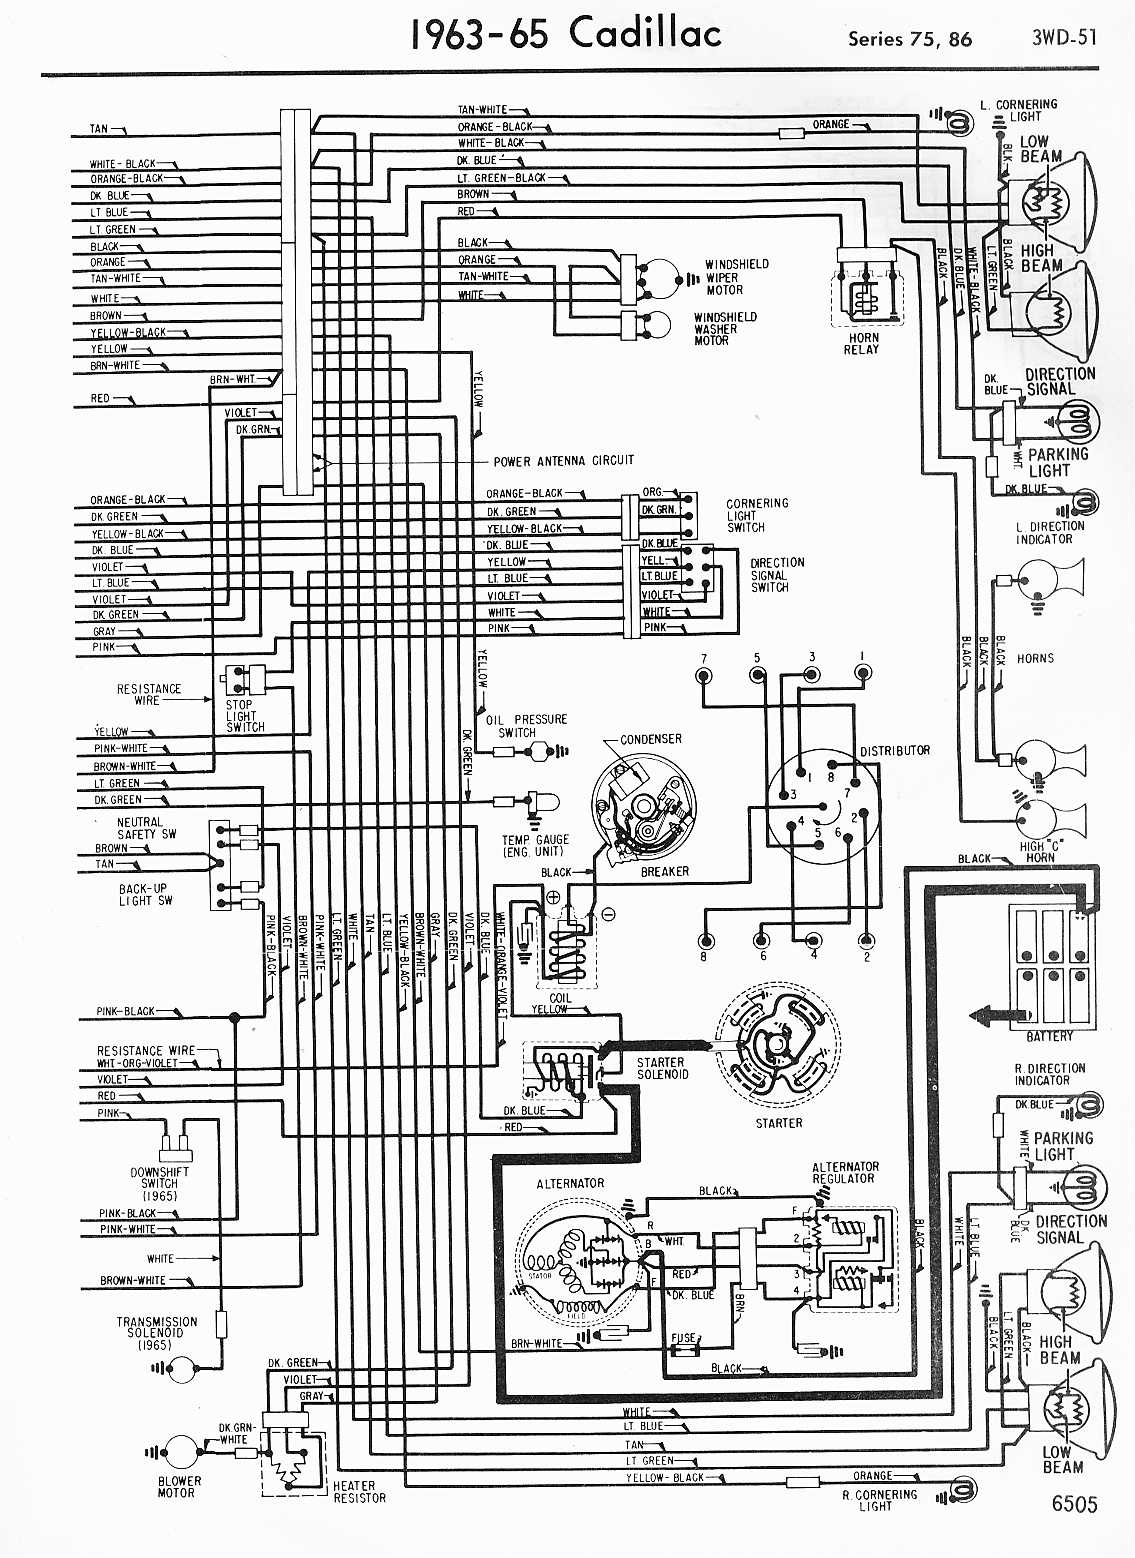 MWireCadi65_3WD 051 cadillac wiring harness ram truck wiring harness \u2022 wiring diagrams  at bayanpartner.co